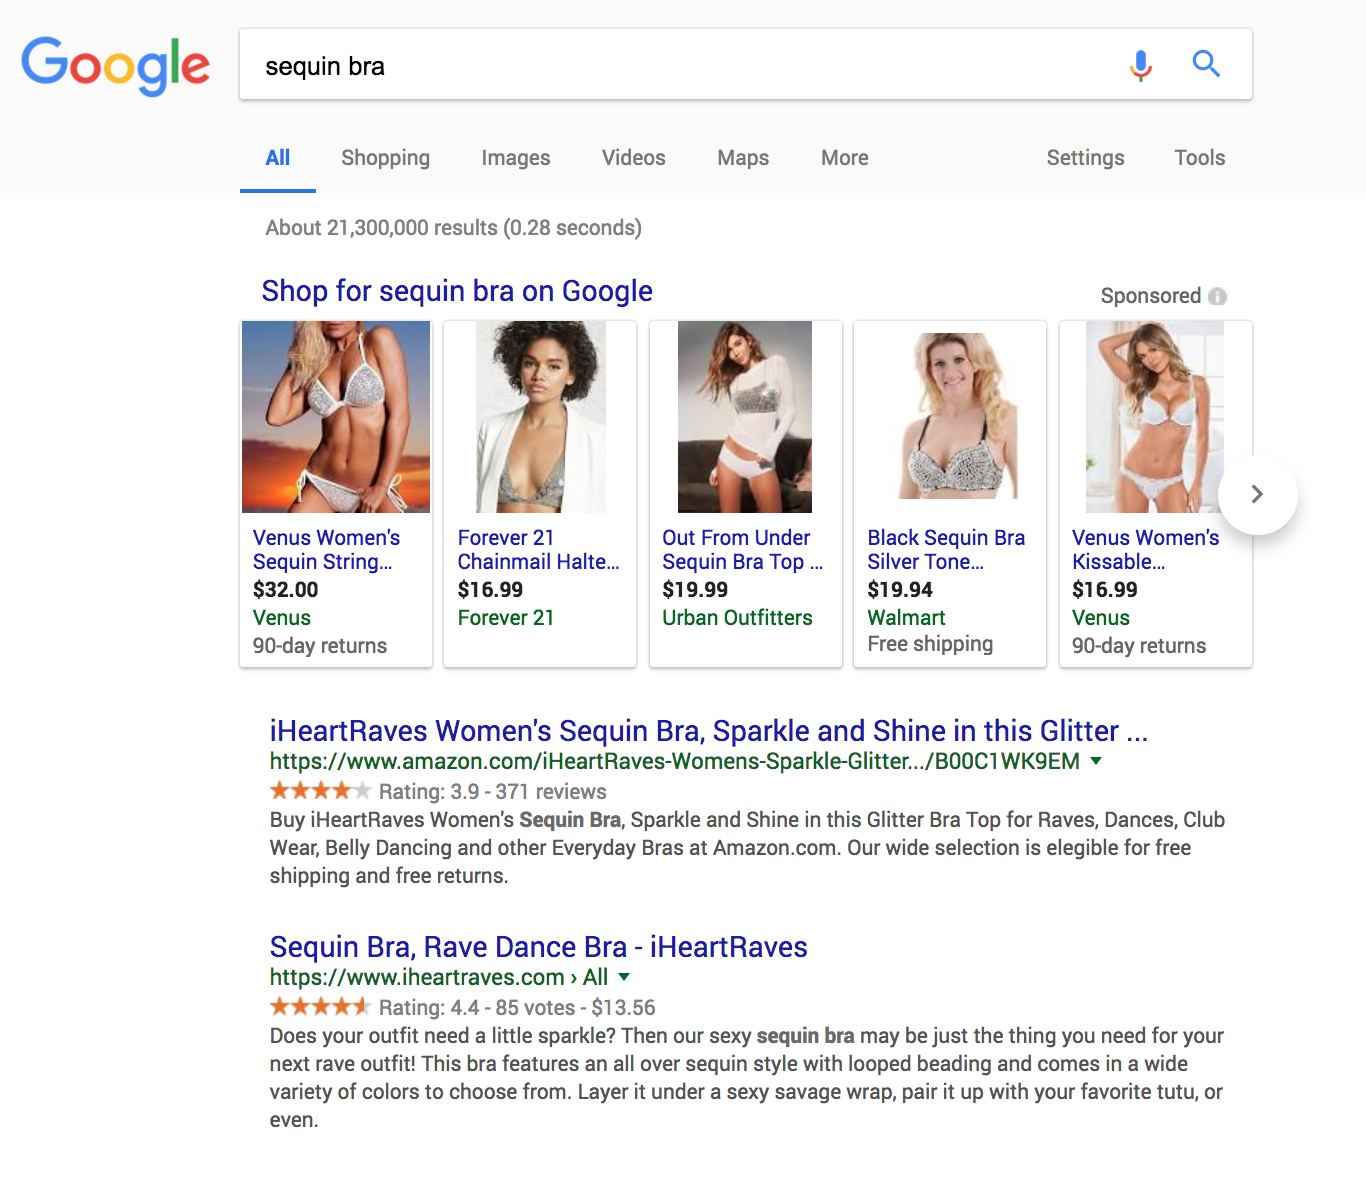 SERP results and the effect of product descriptions on SEO